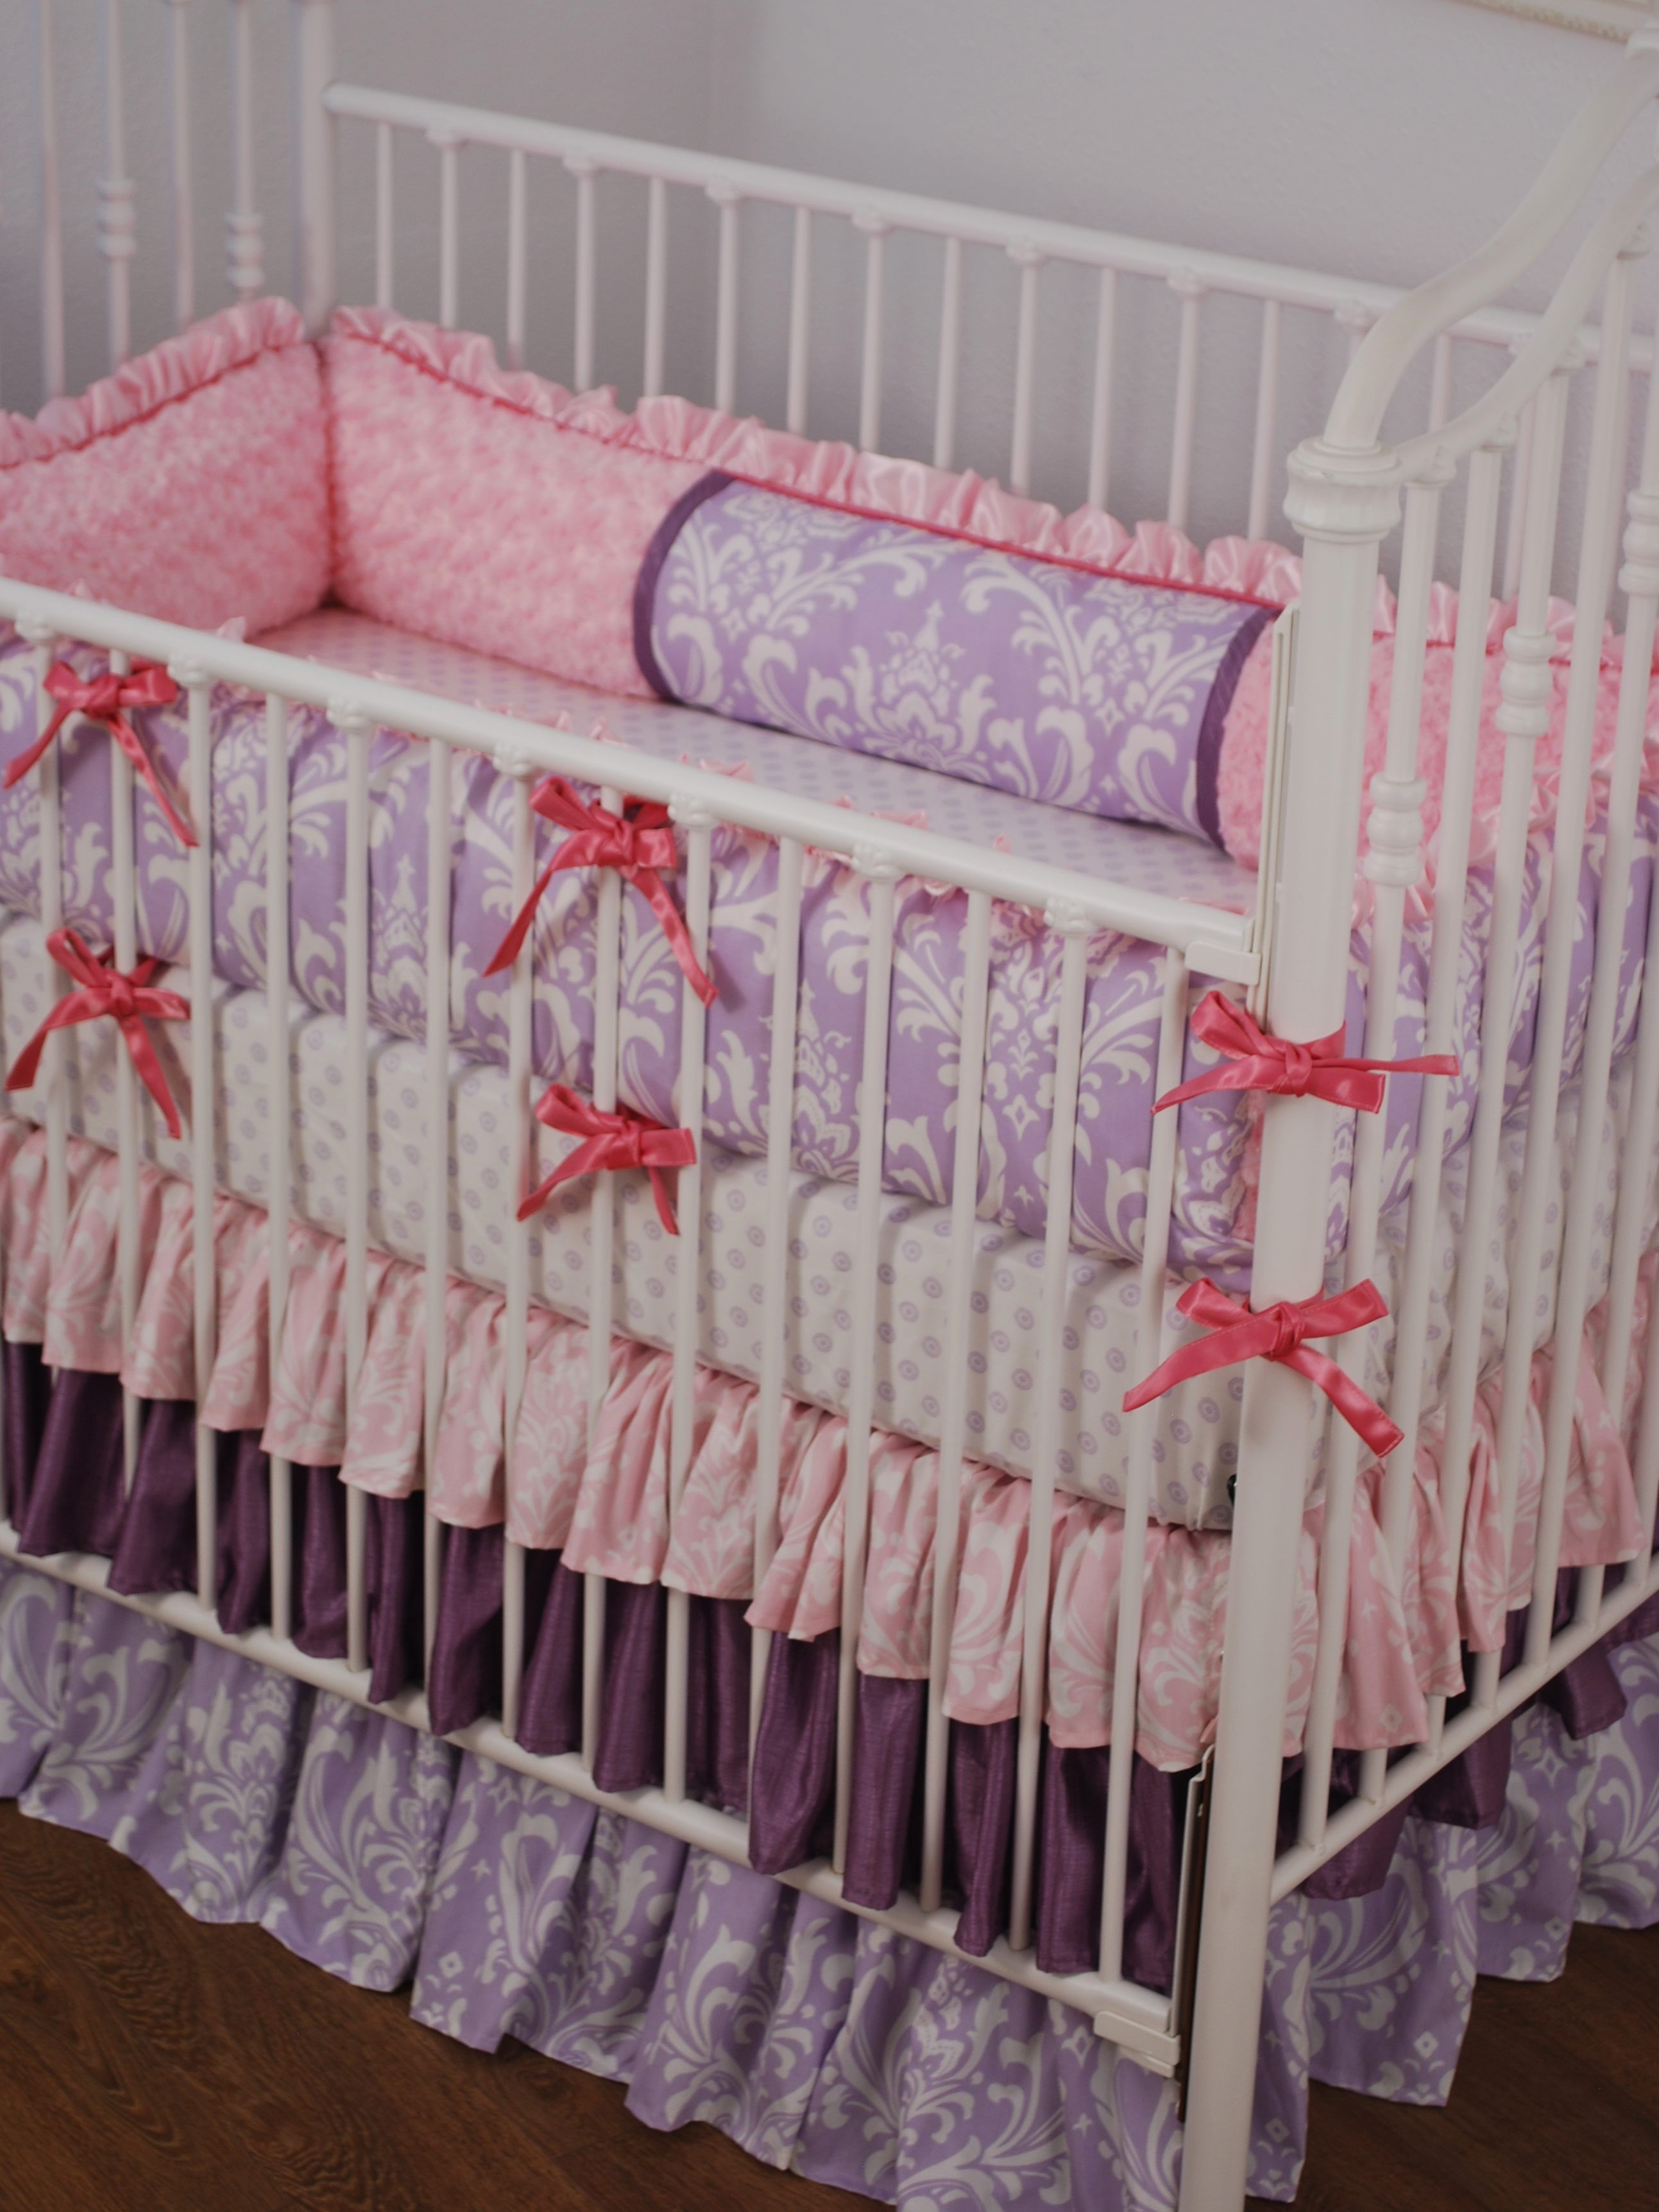 piece crib and ruffle sets bedding for baby cribs dumbo disney pin set dust